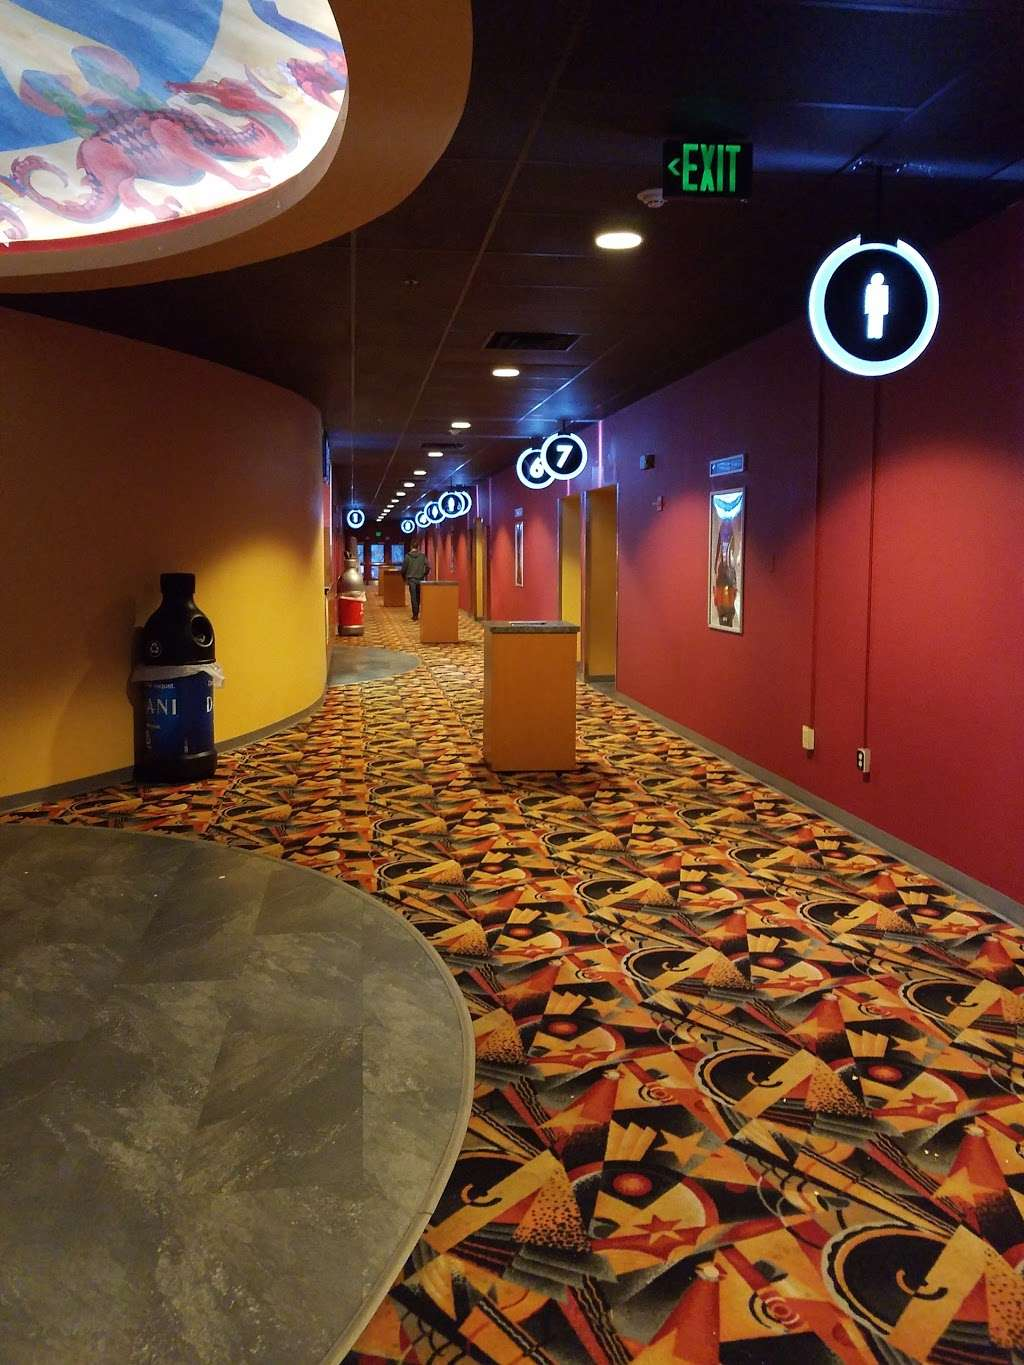 Cinemagic - movie theater  | Photo 3 of 10 | Address: 11 Executive Park Dr, Merrimack, NH 03054, USA | Phone: (603) 423-0240